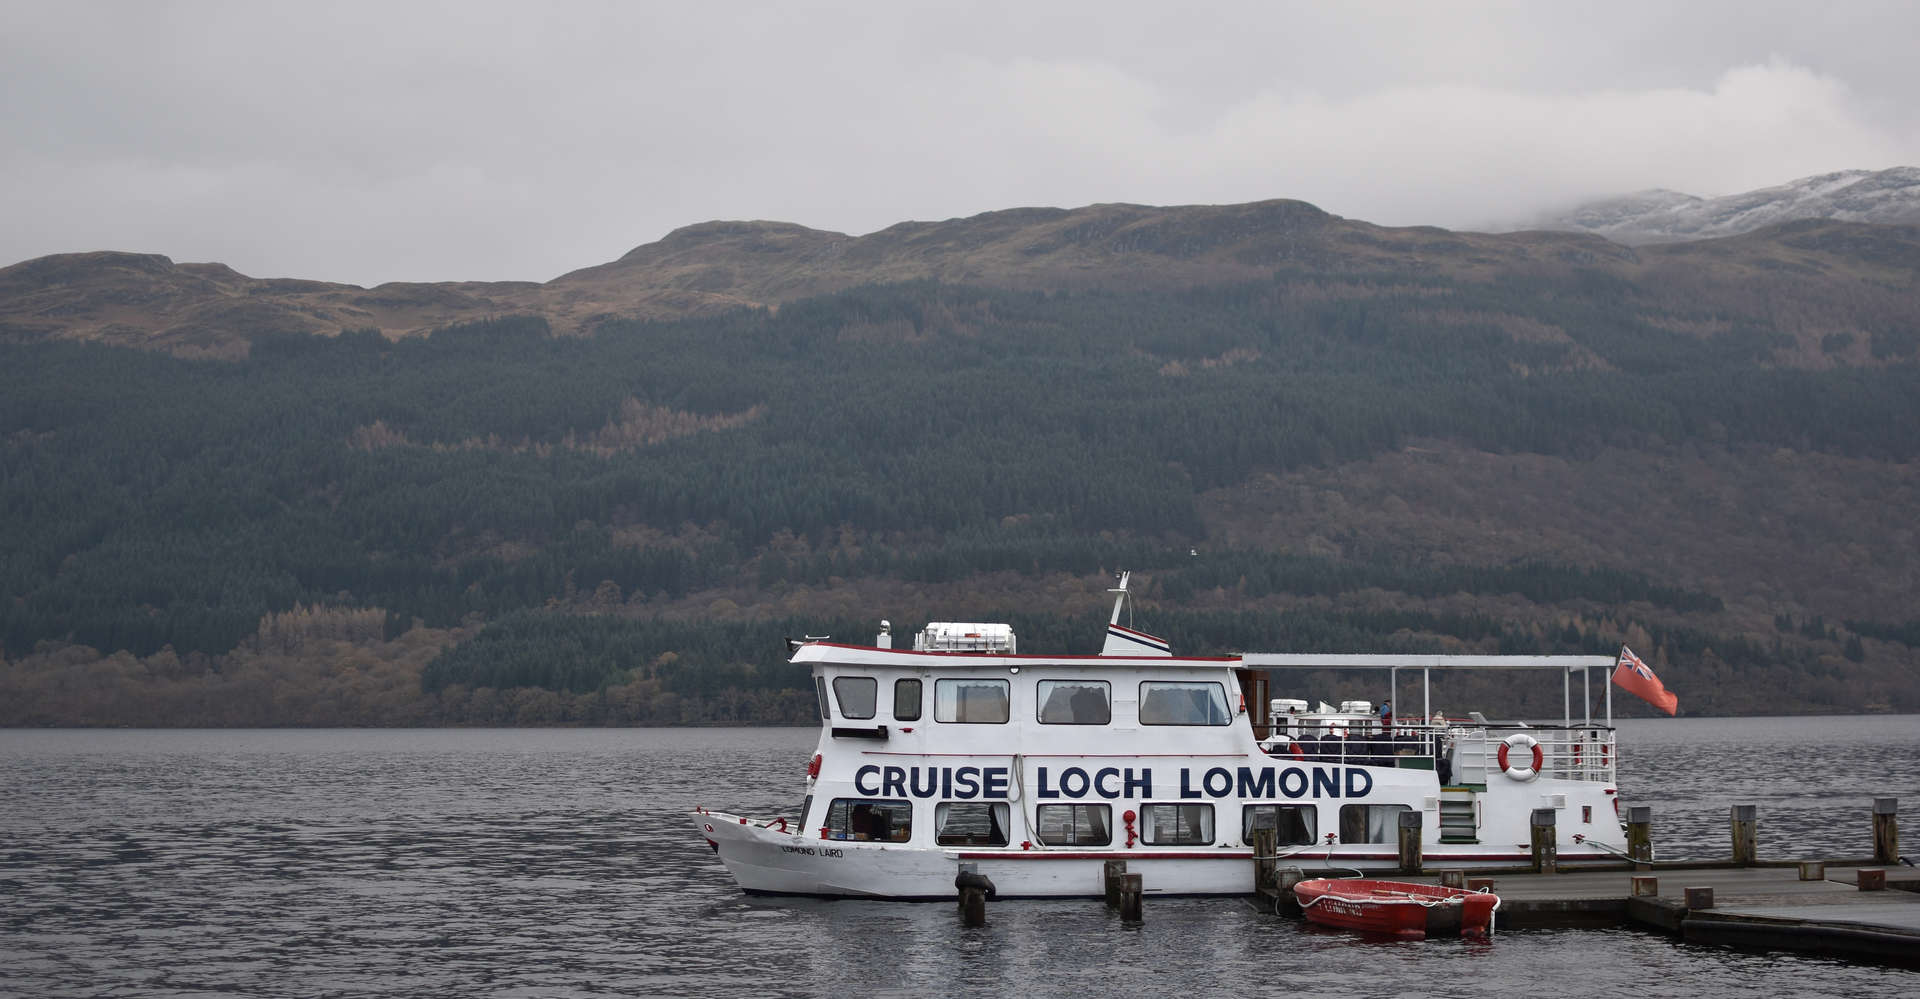 private cruise boat on loch lomond